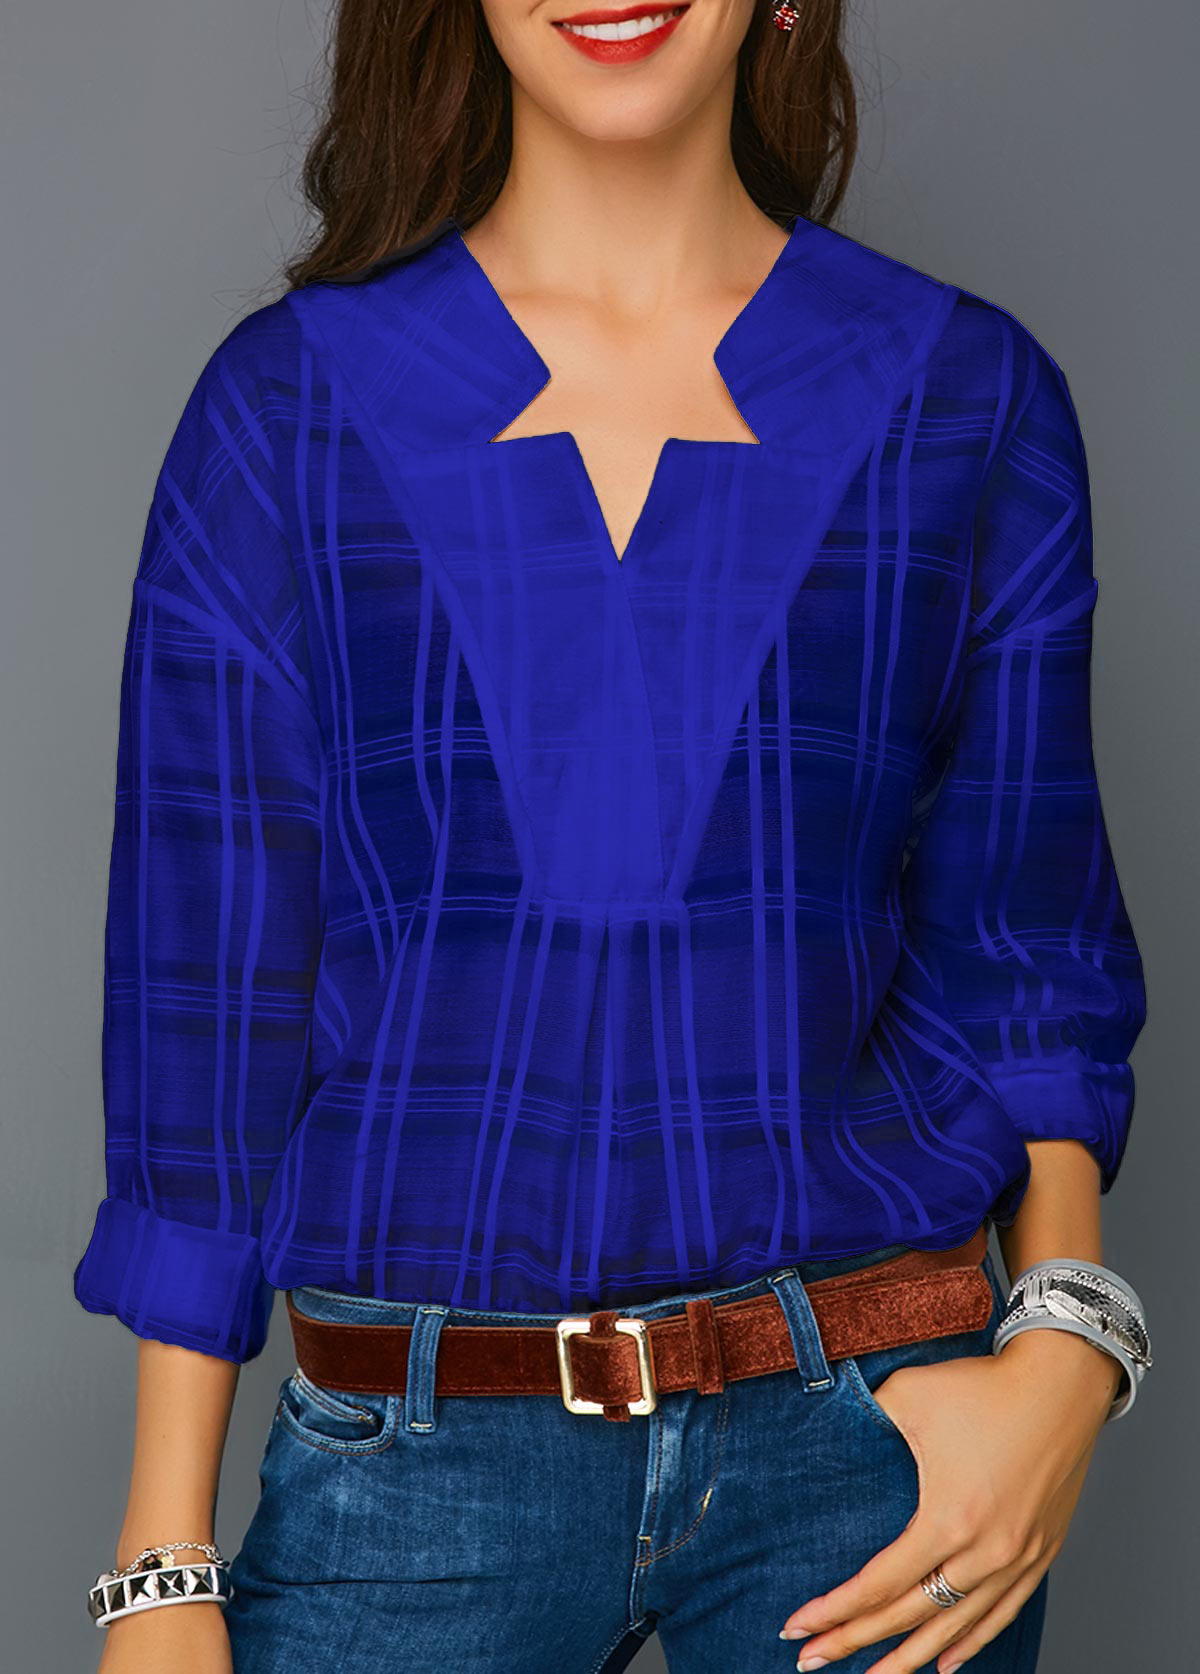 Blue blouse – strong colors and great cuts